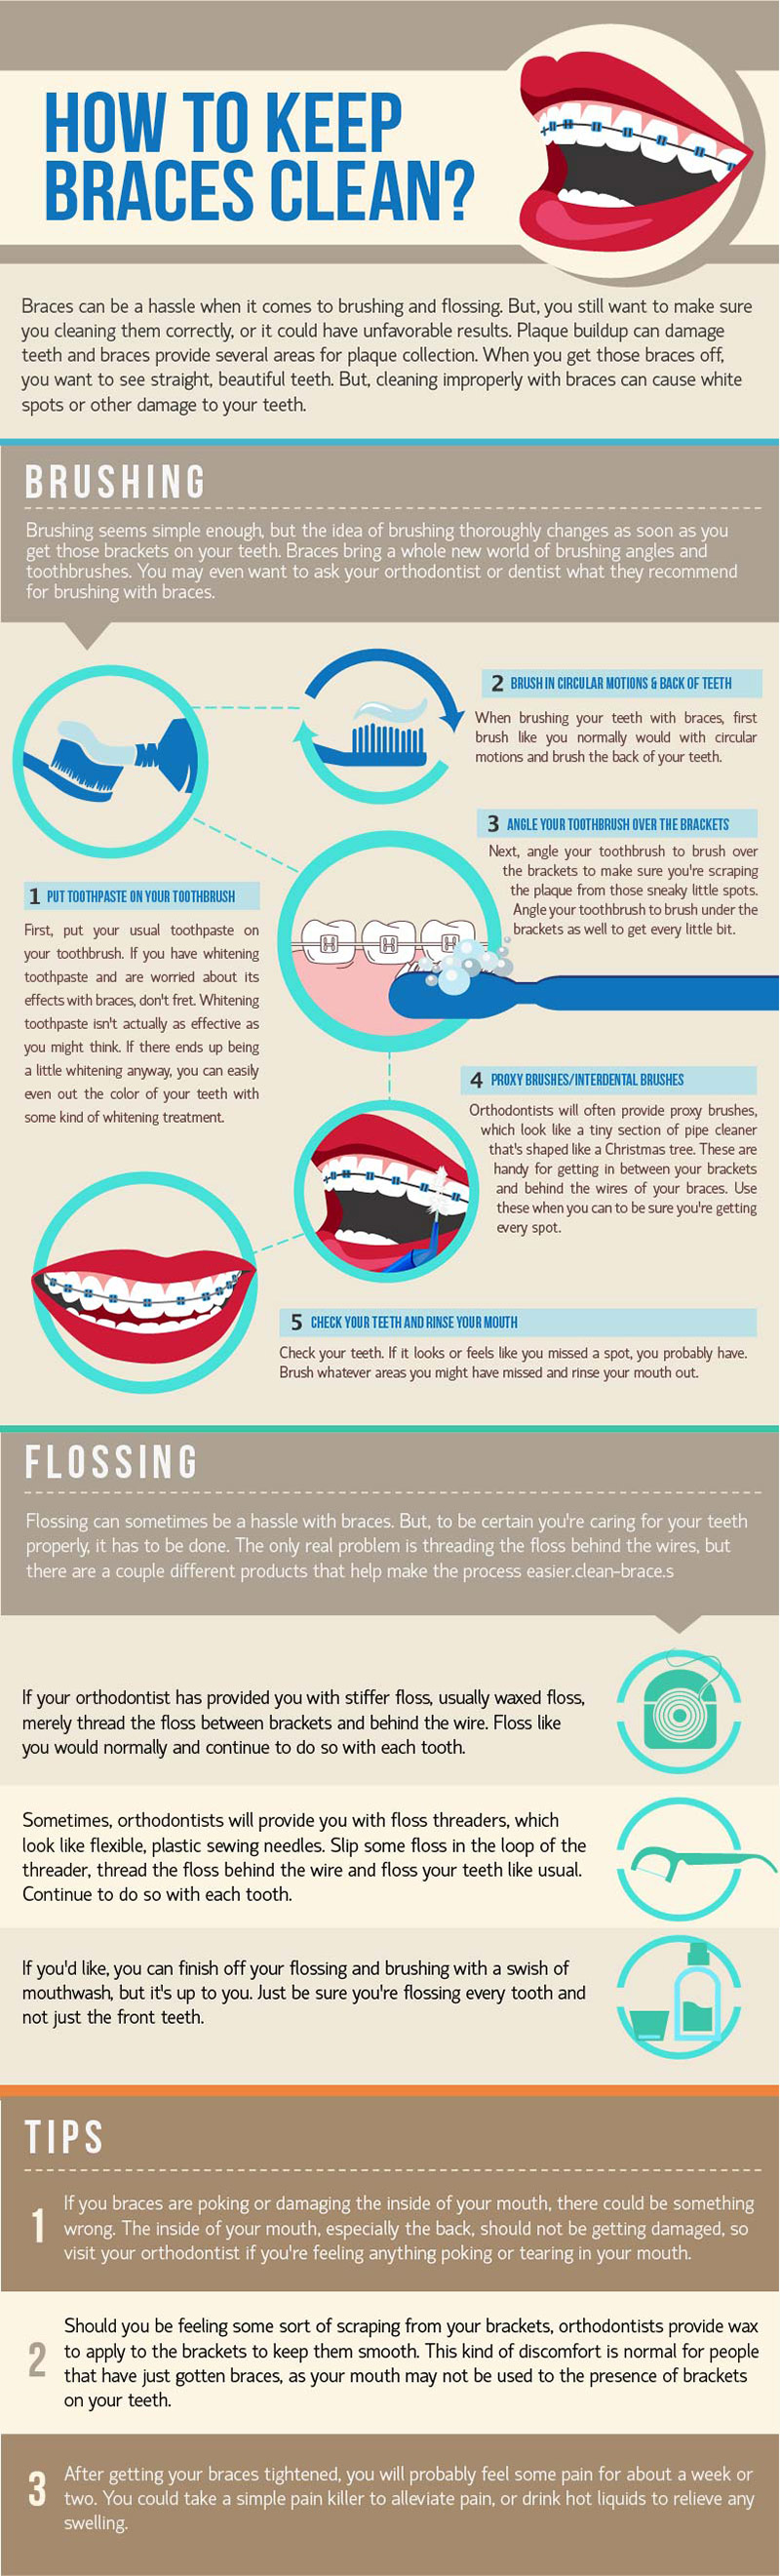 How-to-Keep-Braces-Clean